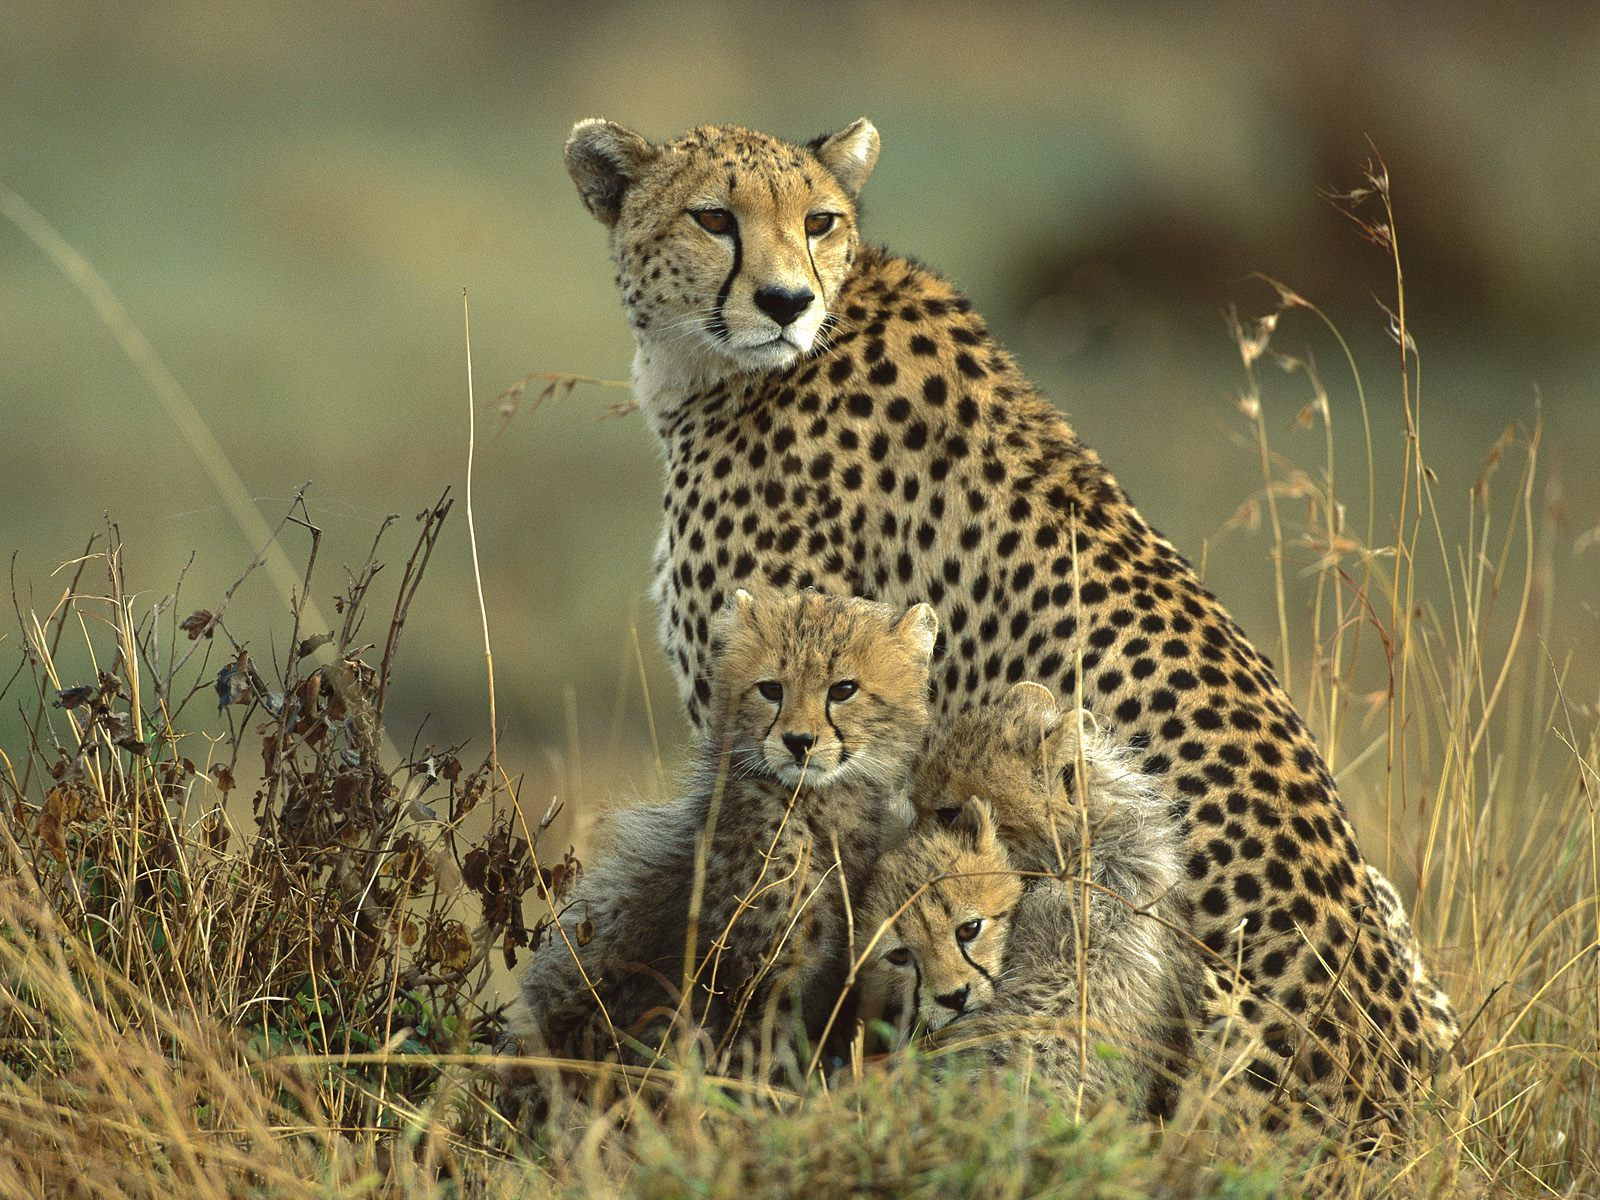 Little Cheetah Pets Cute and Docile